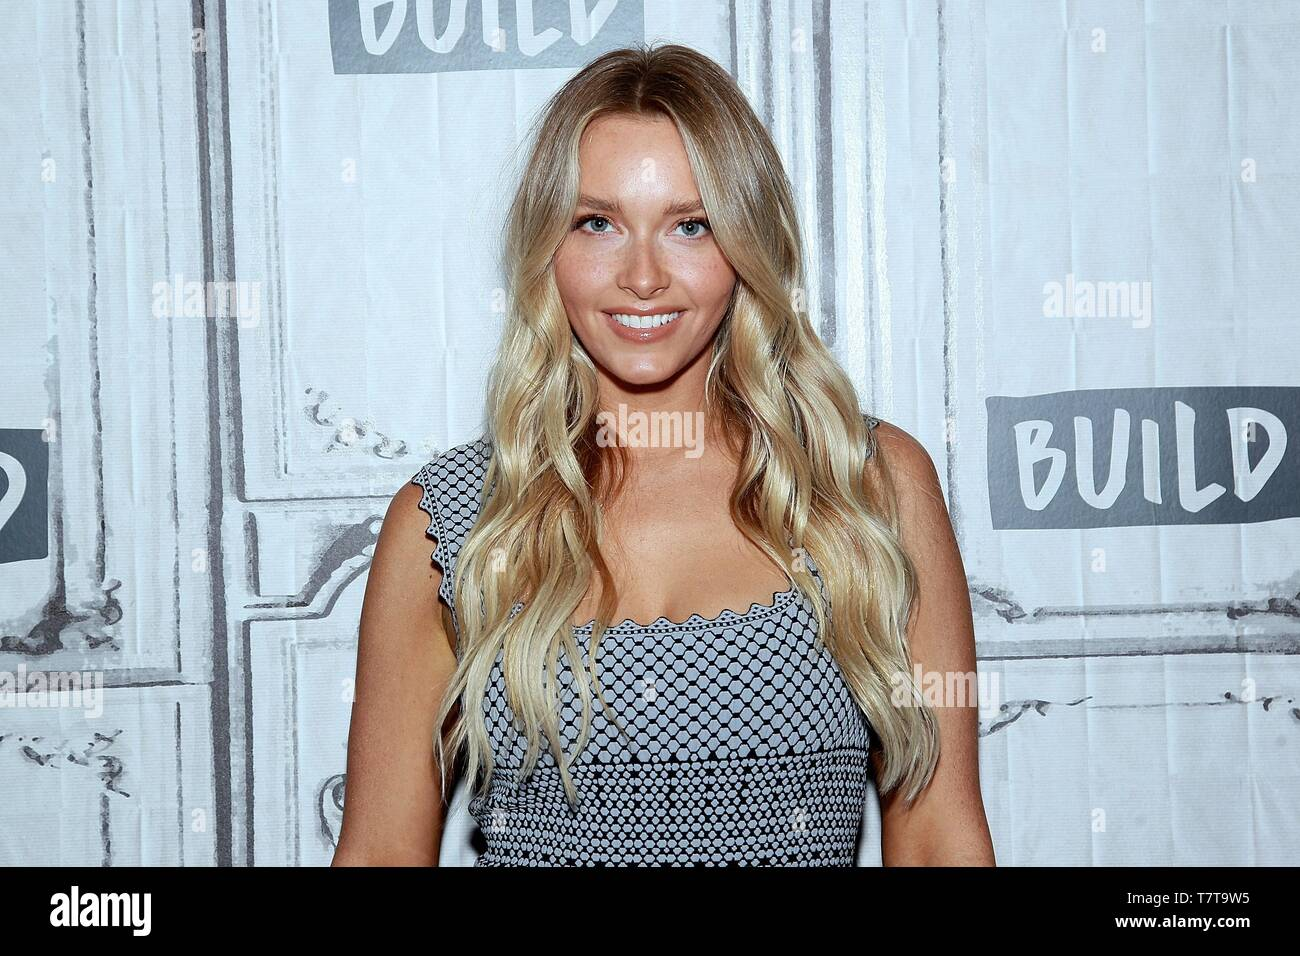 New York, NY, USA  8th May, 2019  Camille Kostek inside for